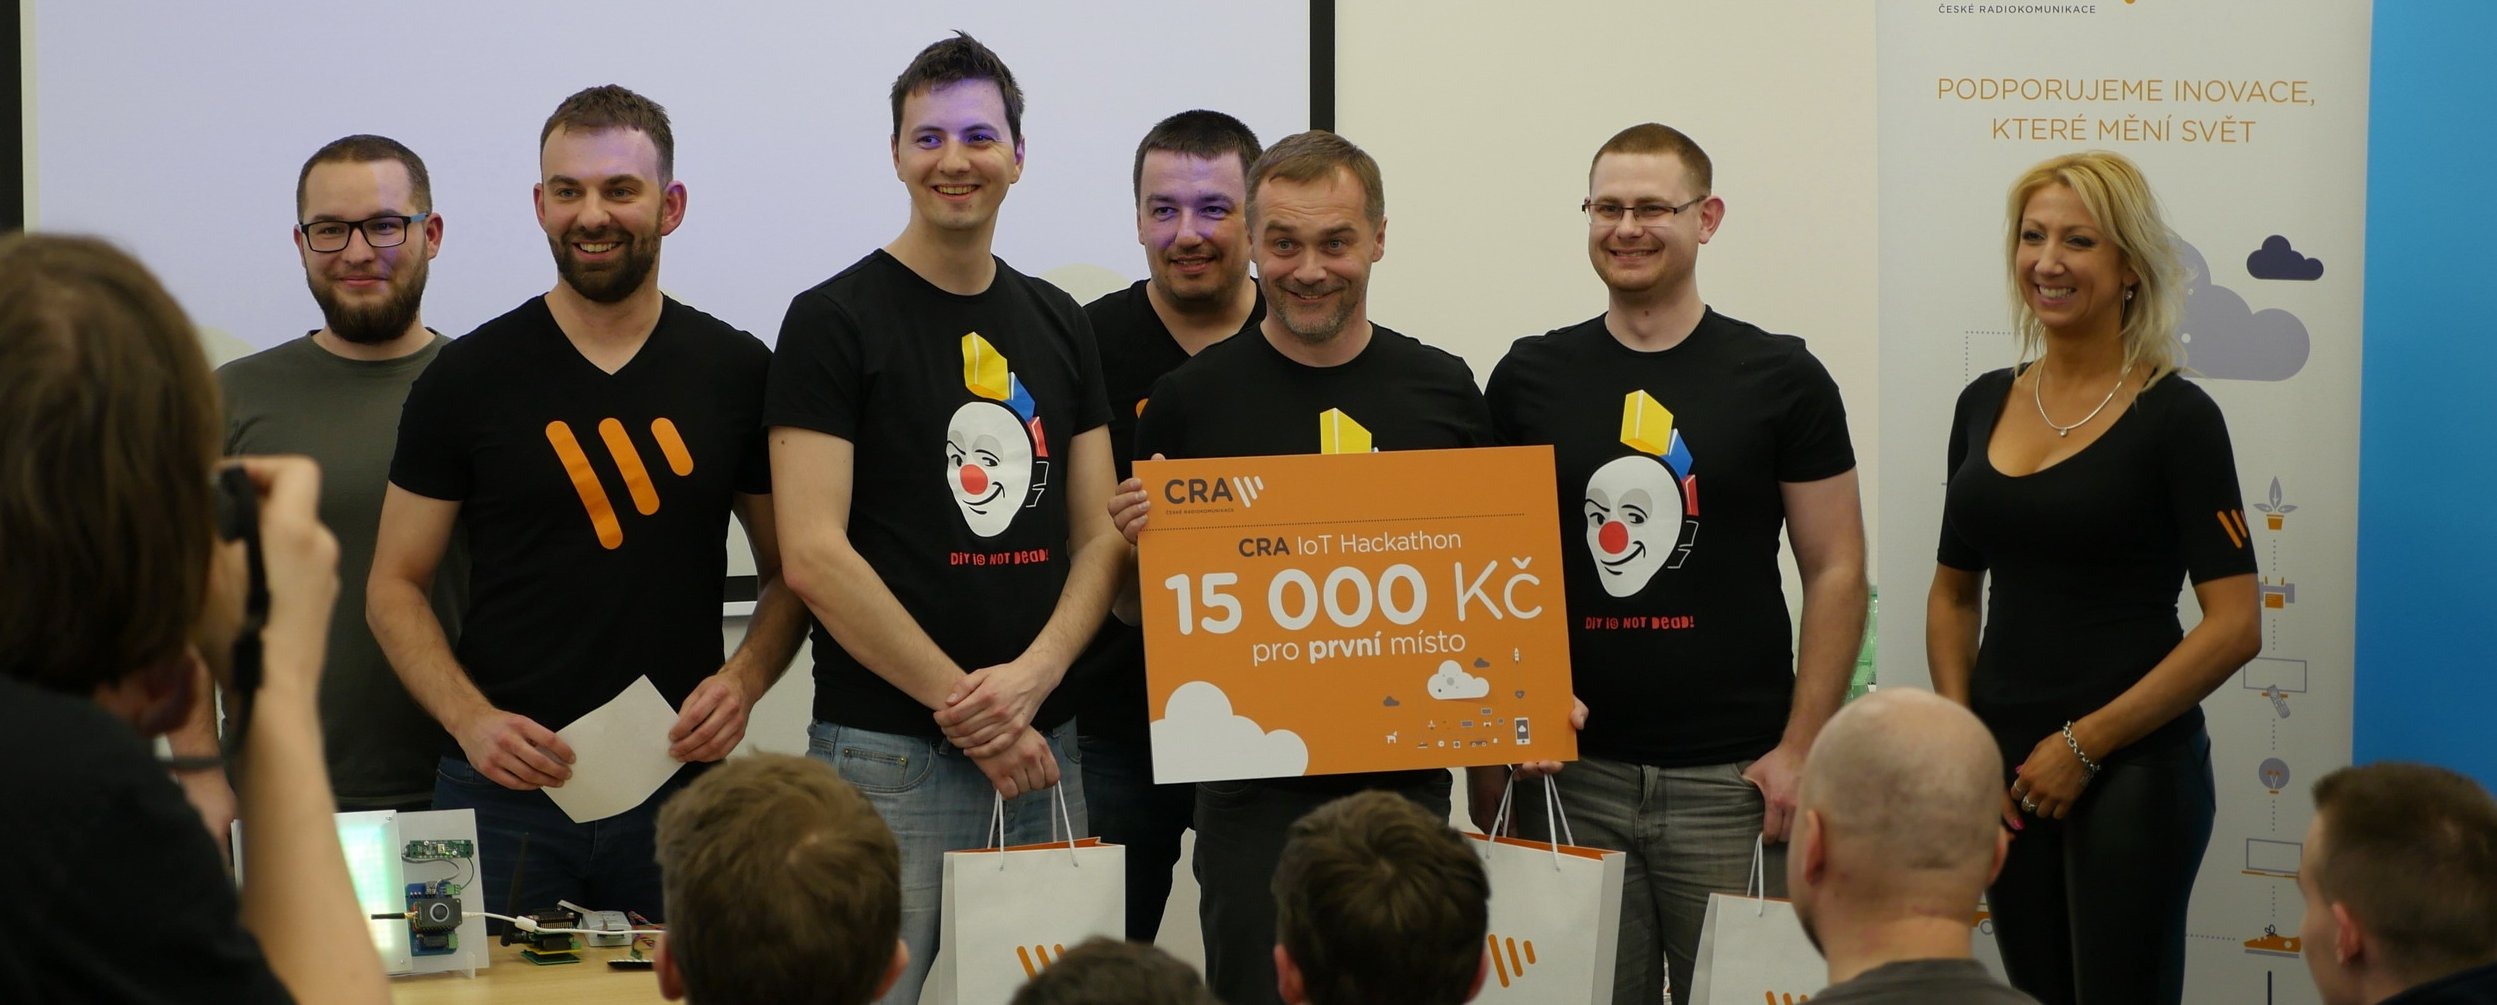 BigClown Took First Place In LoRa Hackathon